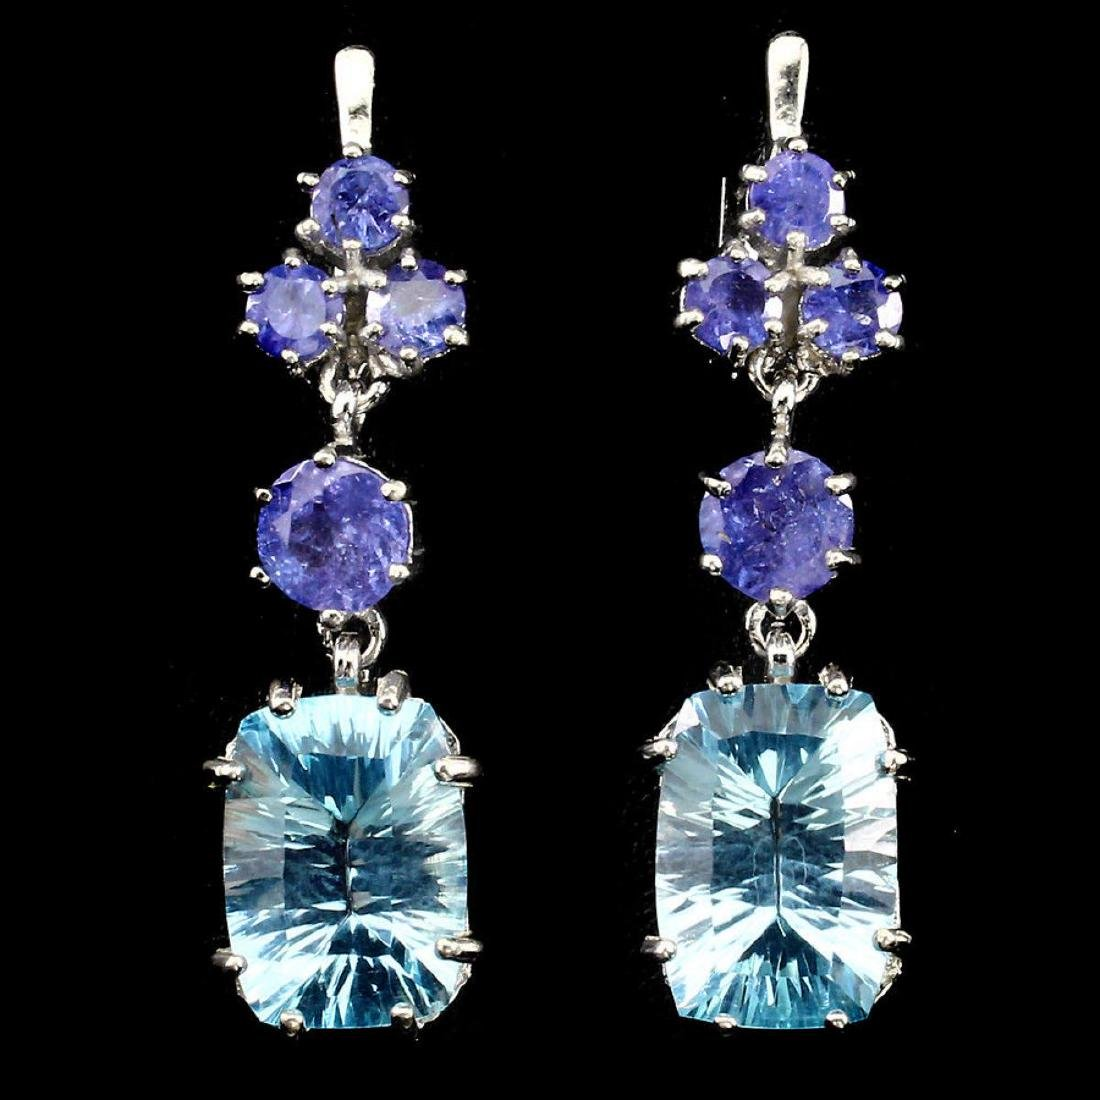 Natural Sky Blue Topaz (14x10 MM) & Tanzanite Earrings